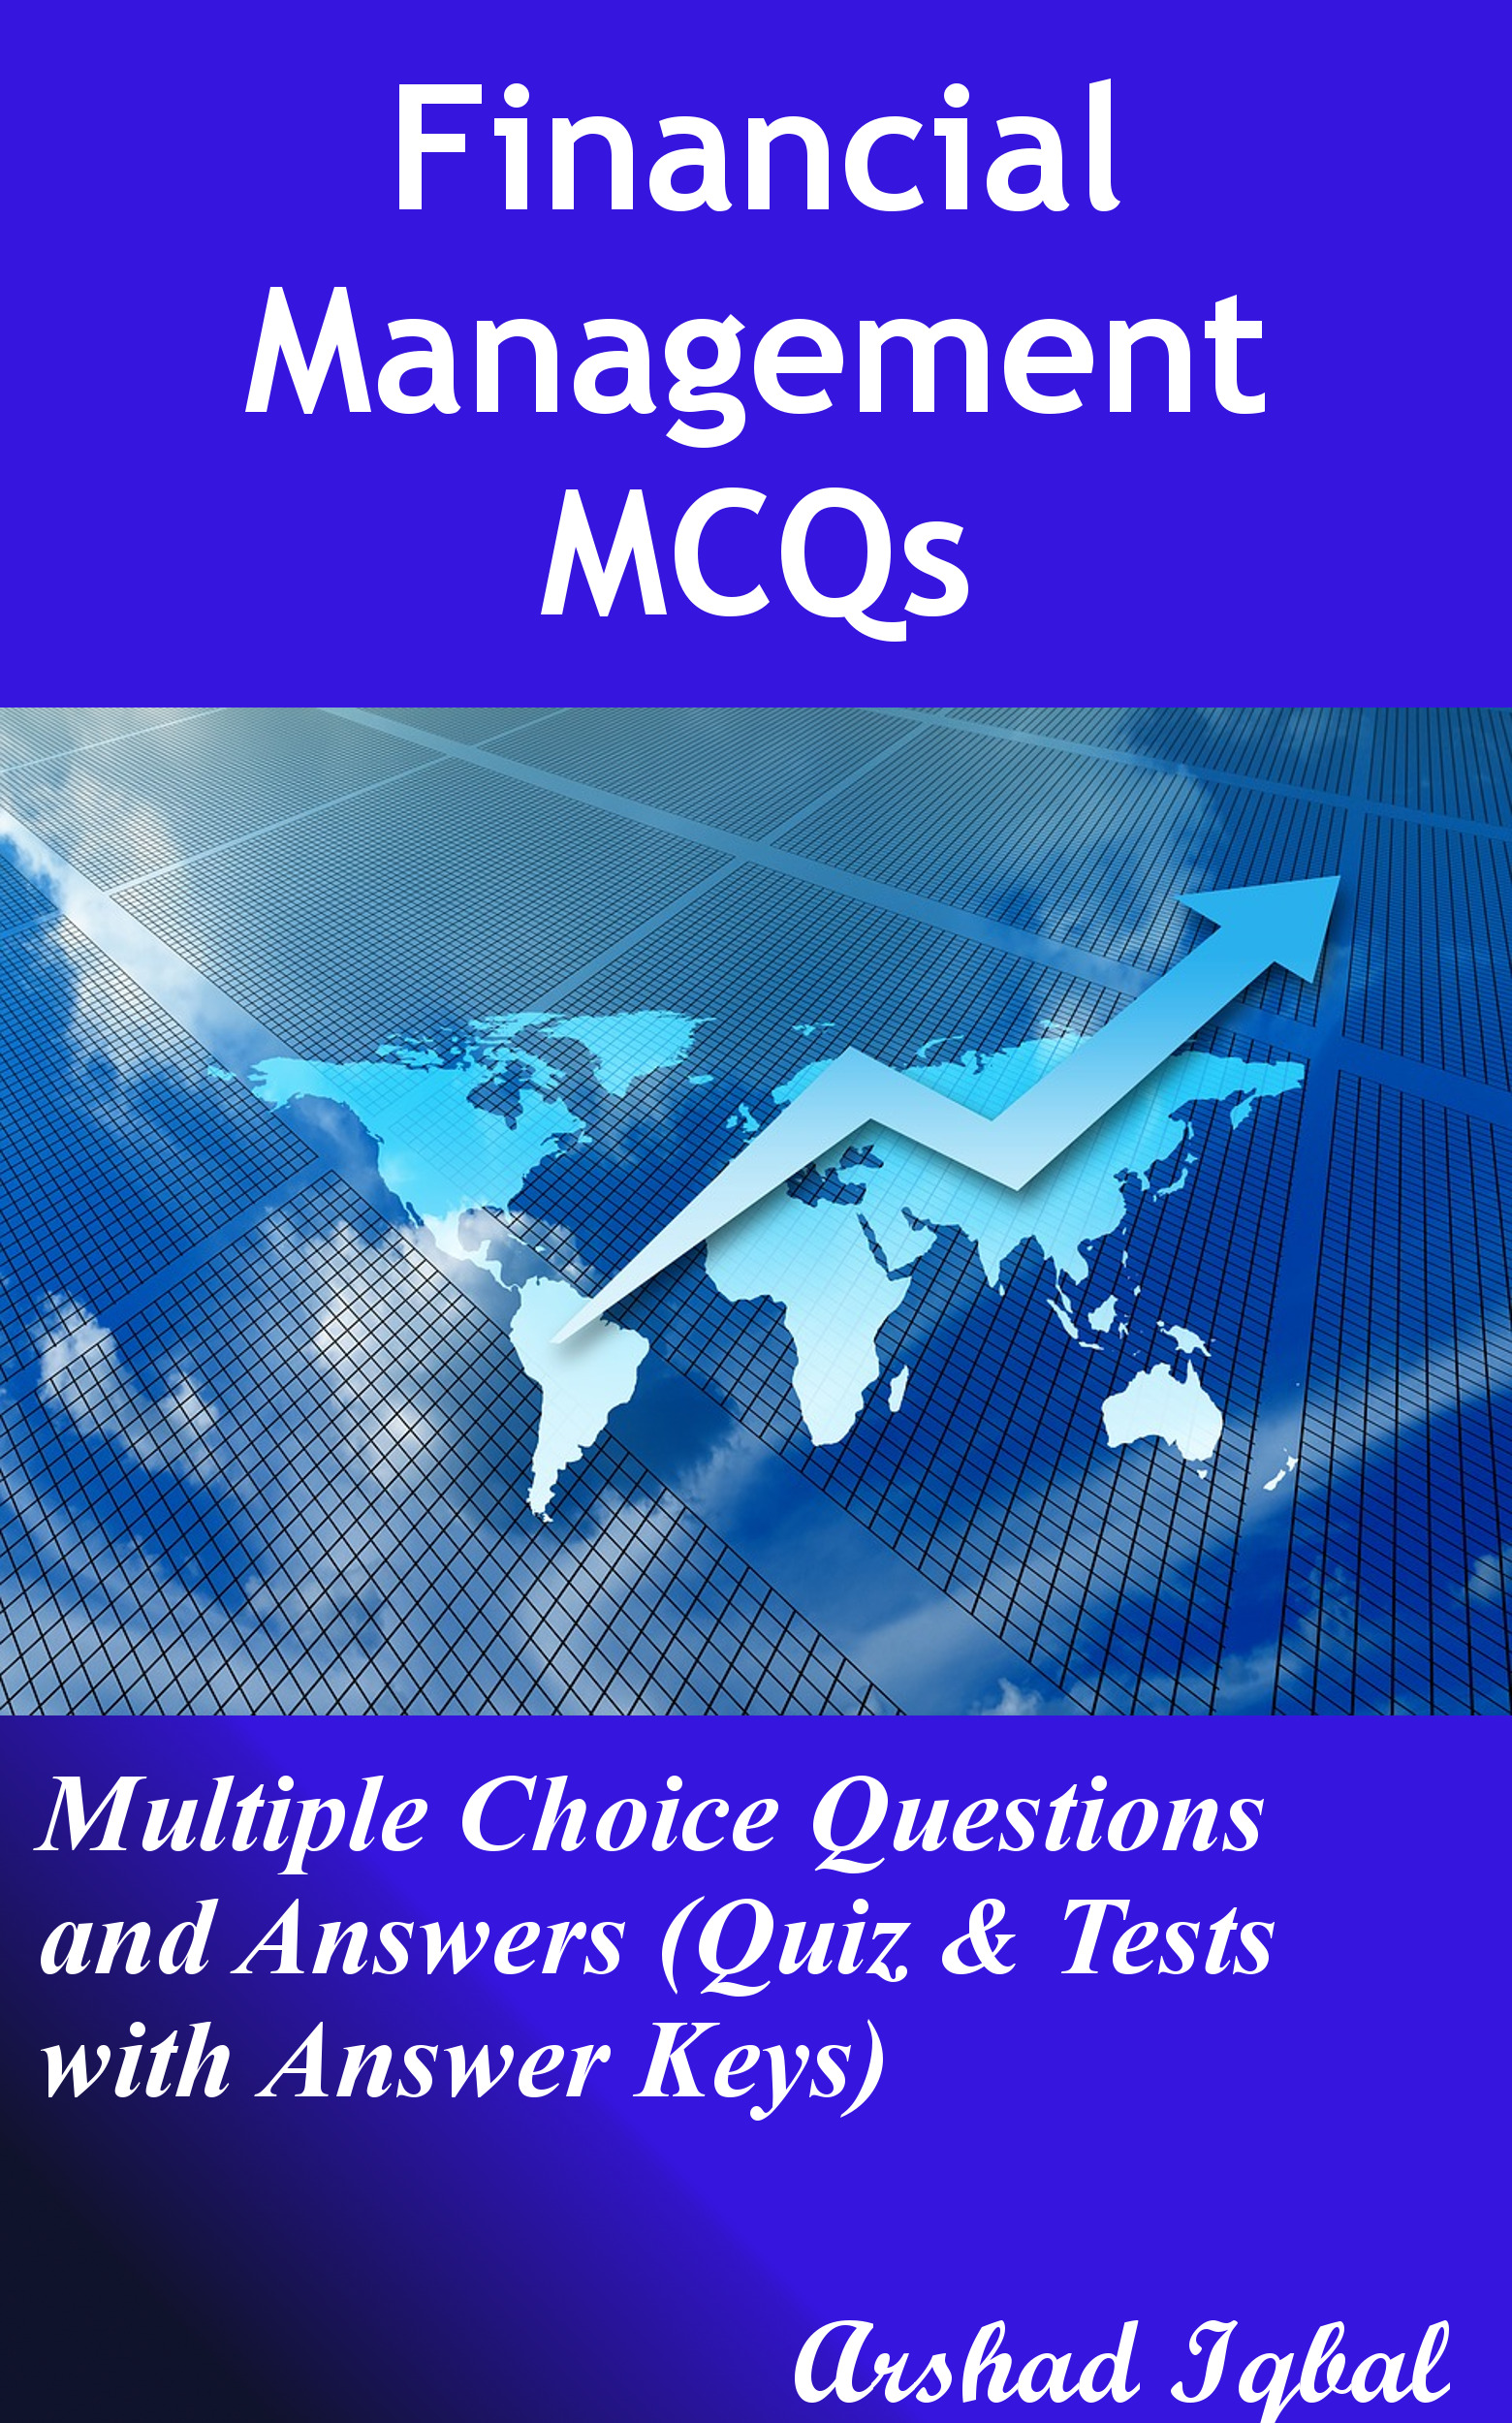 Financial Management Multiple Choice Questions and Answers (MCQs): Quizzes & Practice Tests with Answer Key